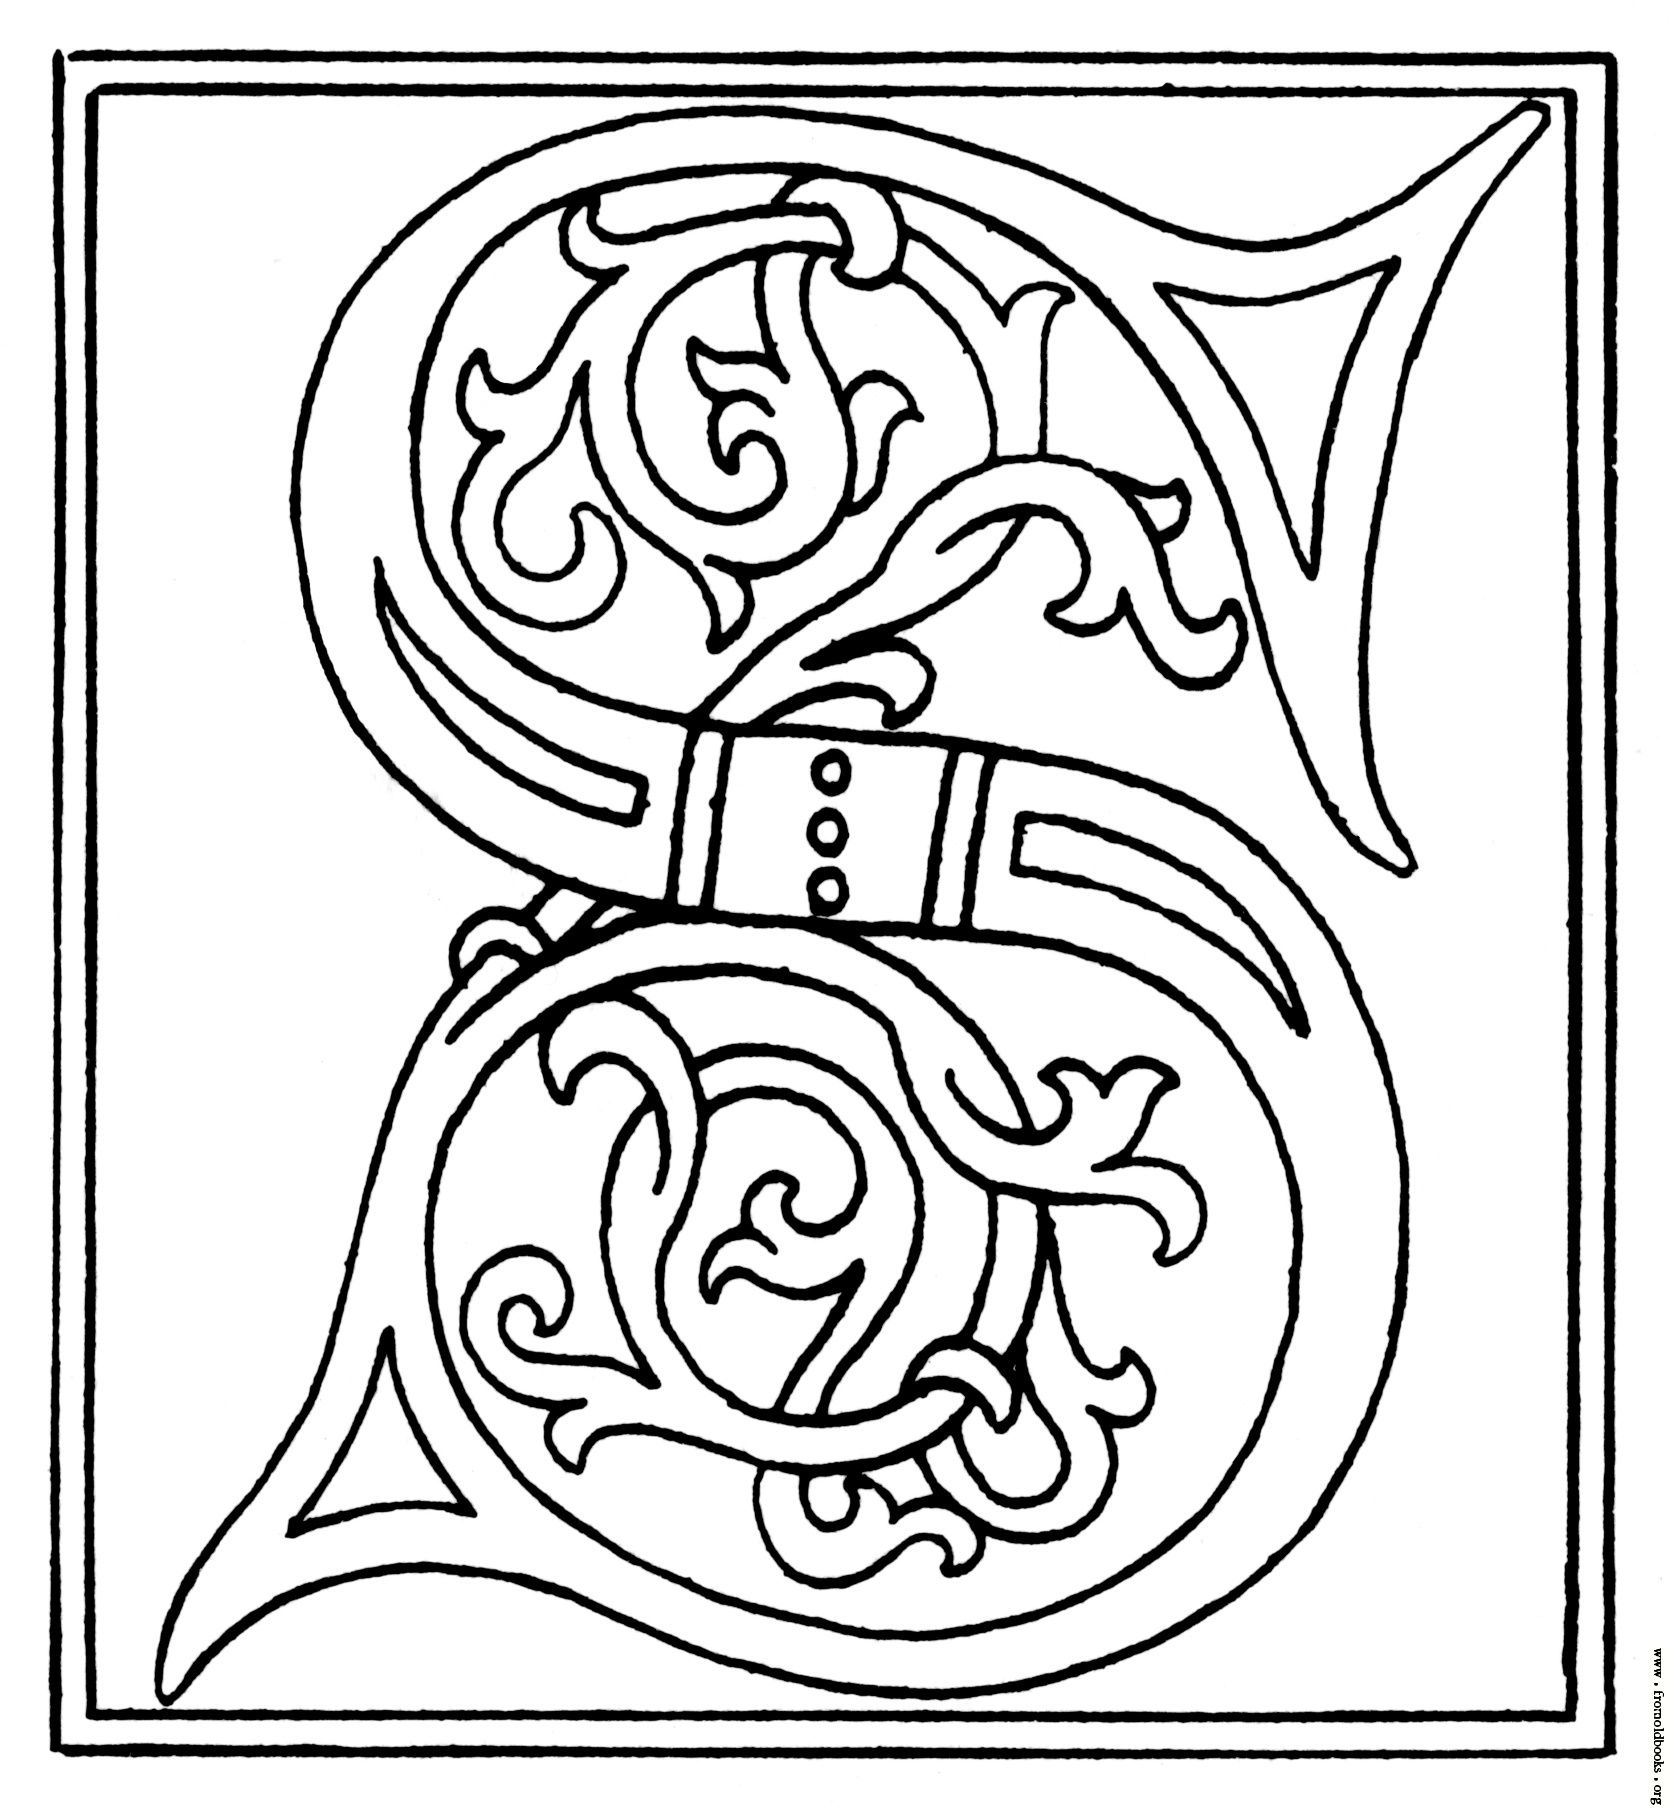 Coloring Pages Illuminated Letters Coloring Pages 1000 images about edat mitjana on pinterest initials printed and reims cathedral